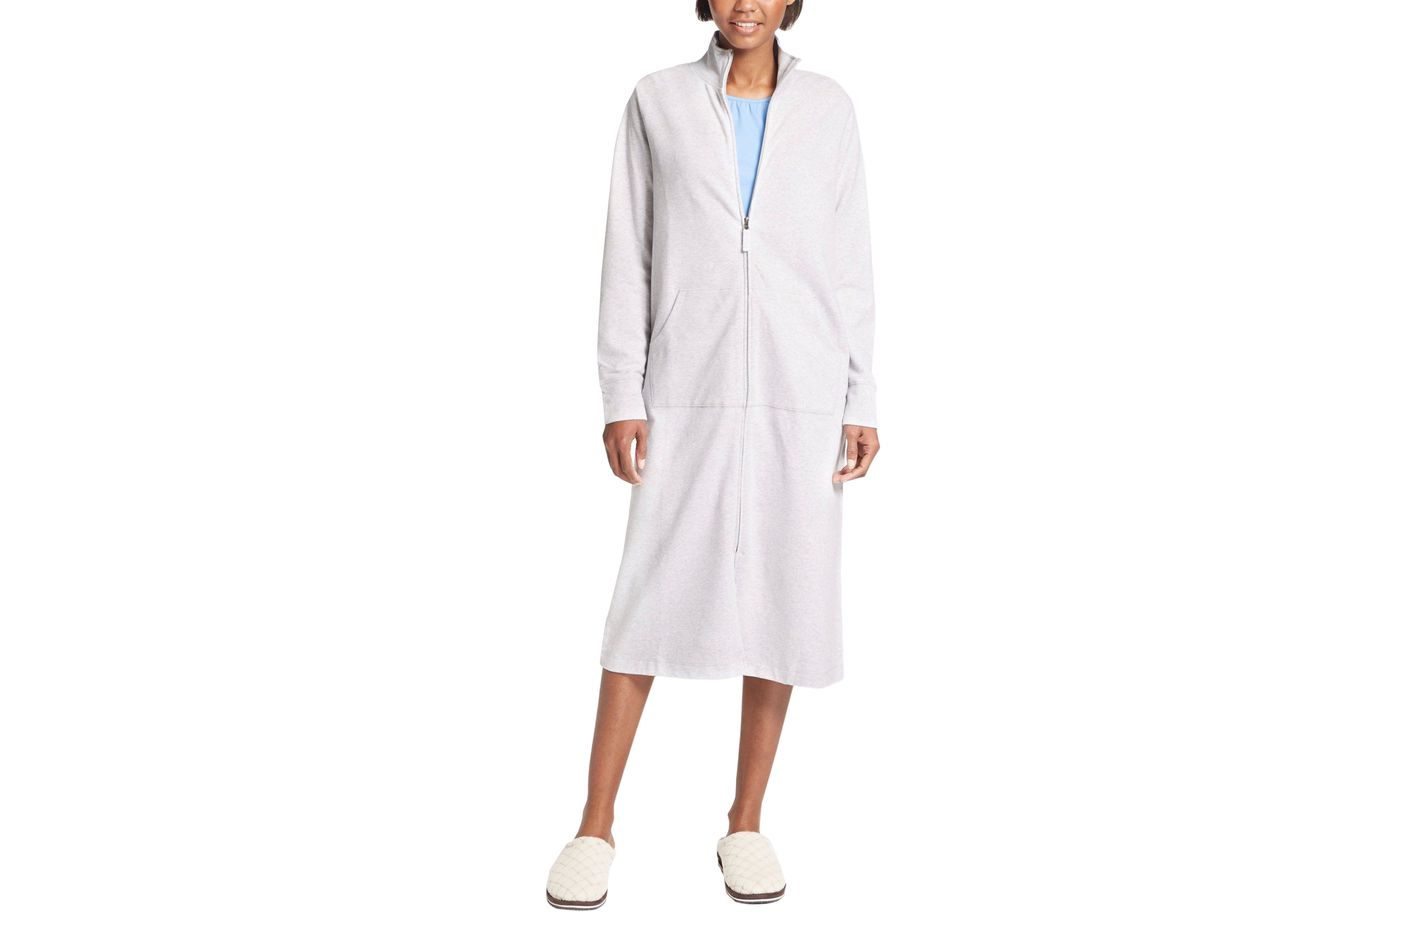 Best Zip-Front Robe Dressing Gown Gift Idea 2017 82d9e4a2b